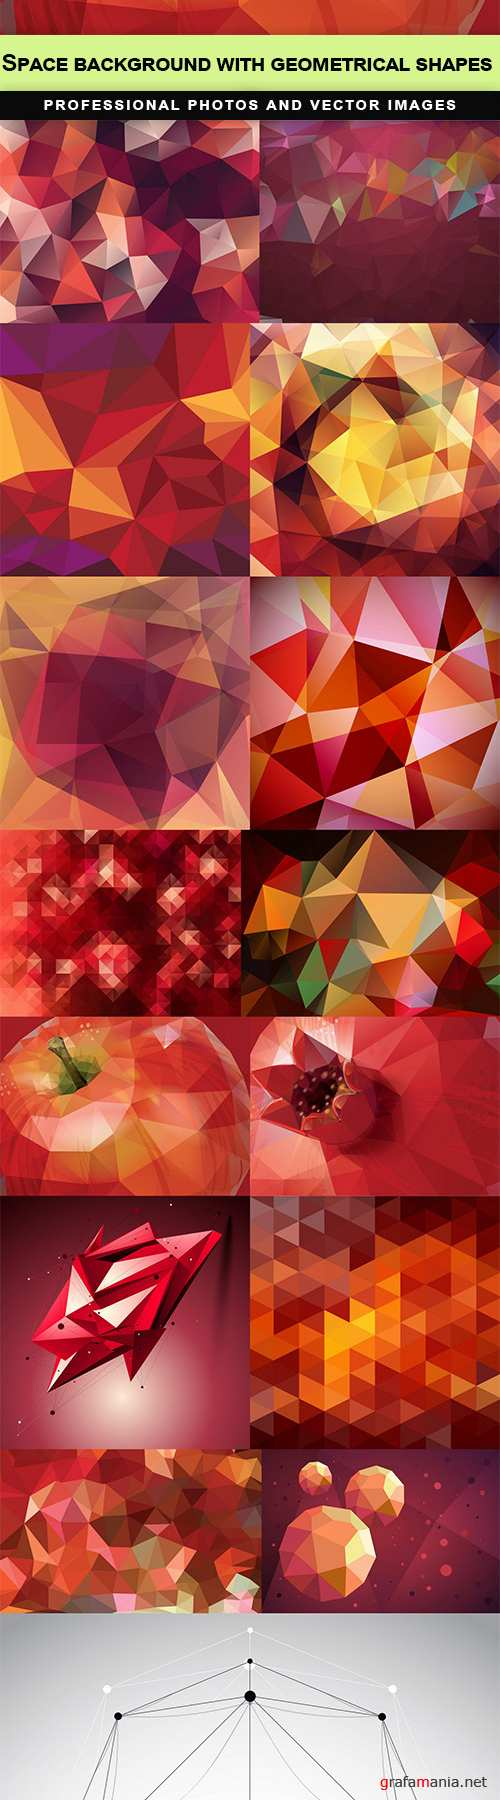 Space background with geometrical shapes - 15   EPS